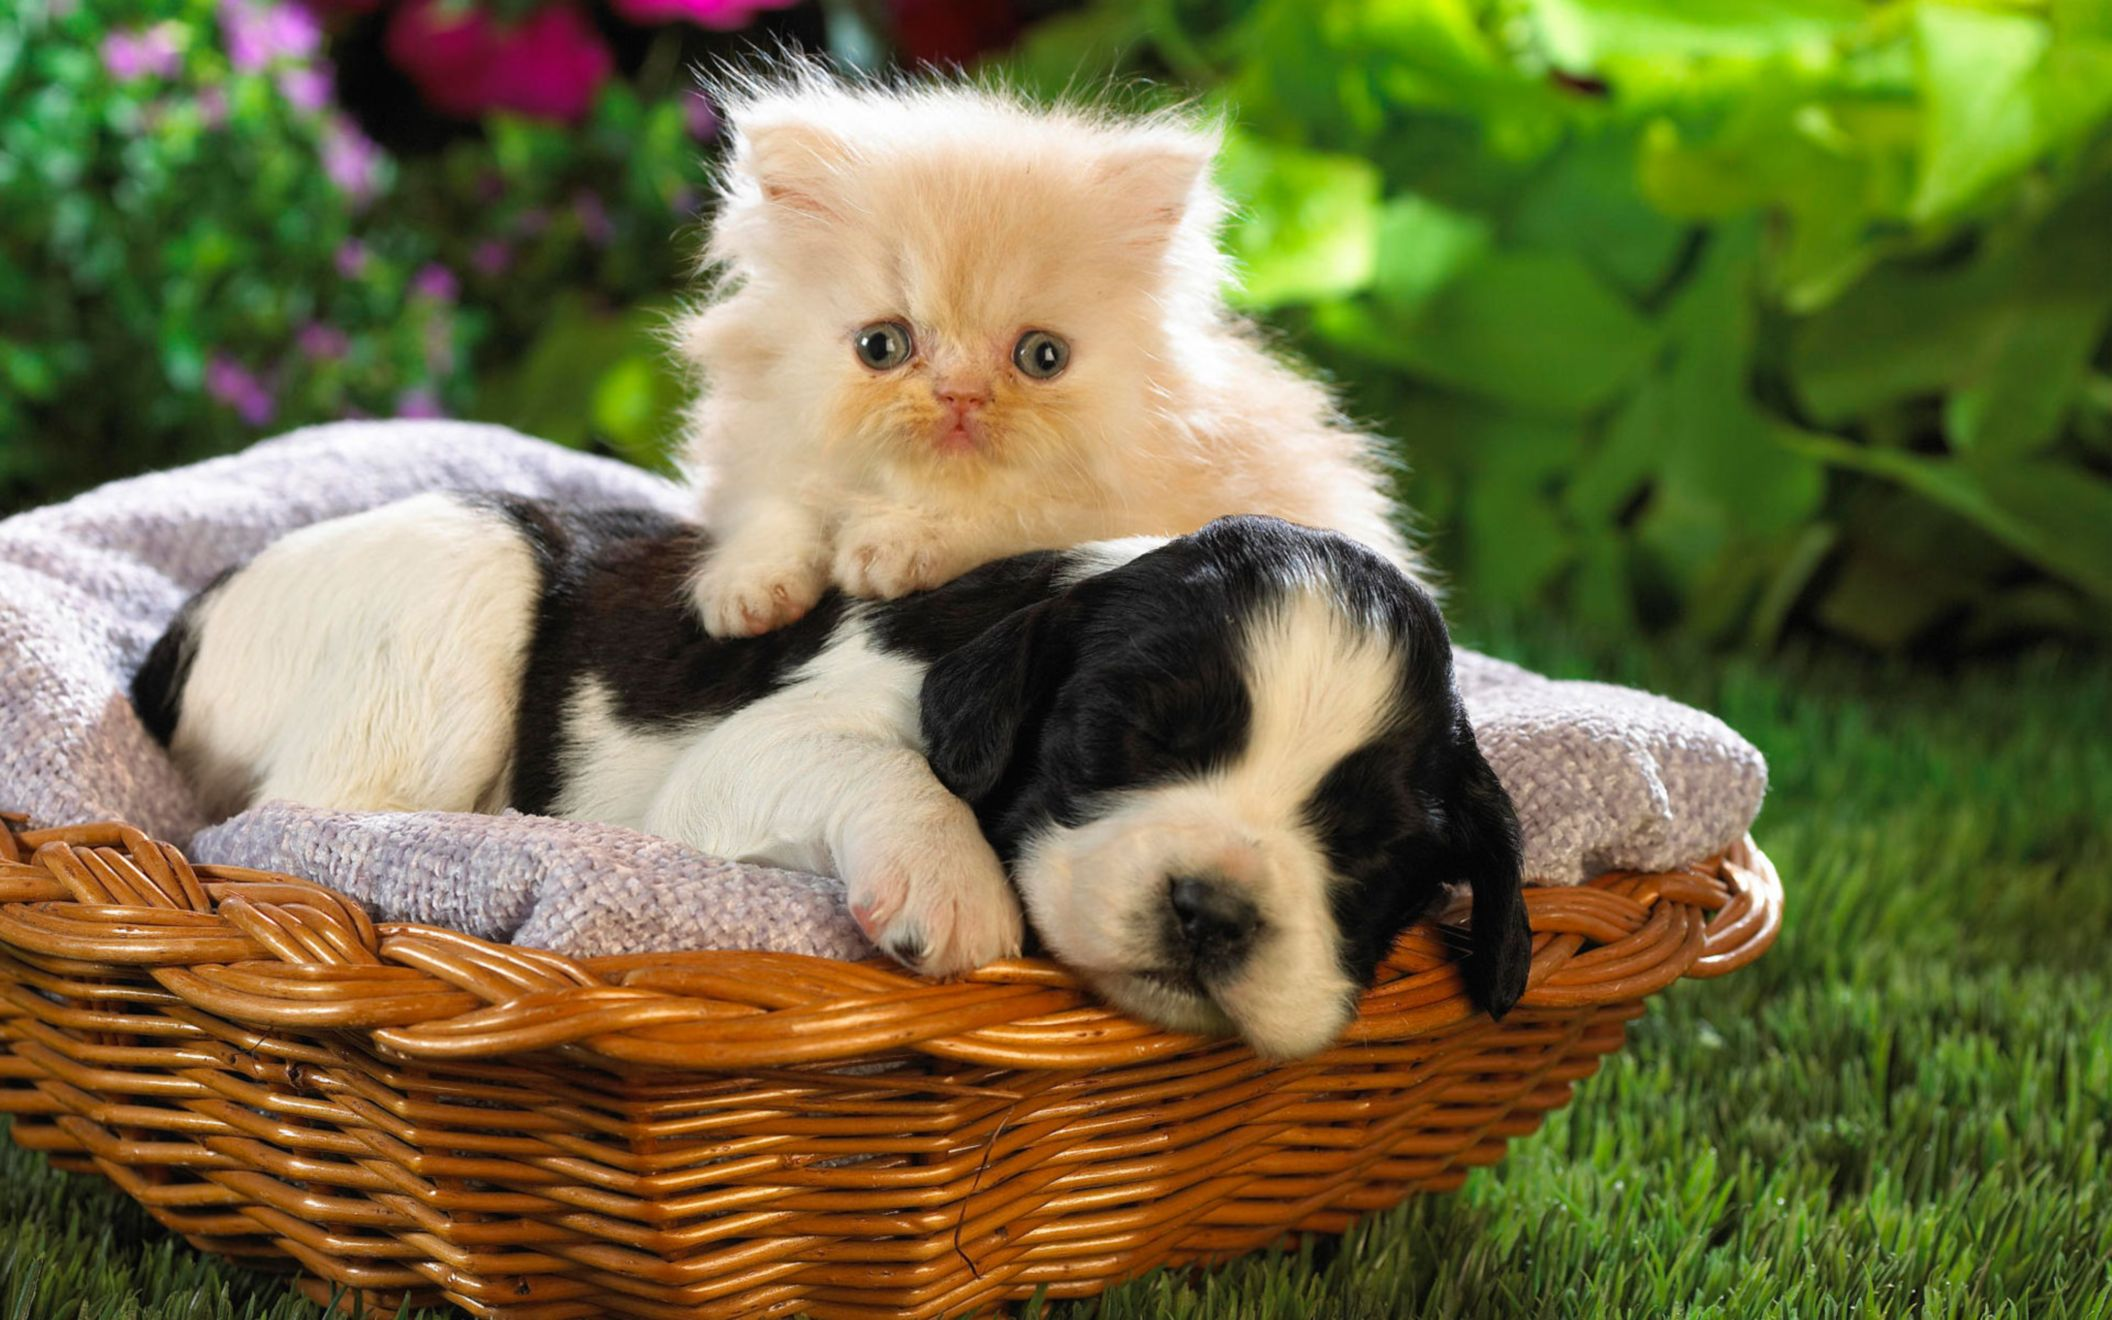 Download free HD Cute Basket Buddies Wide Wallpaper, image